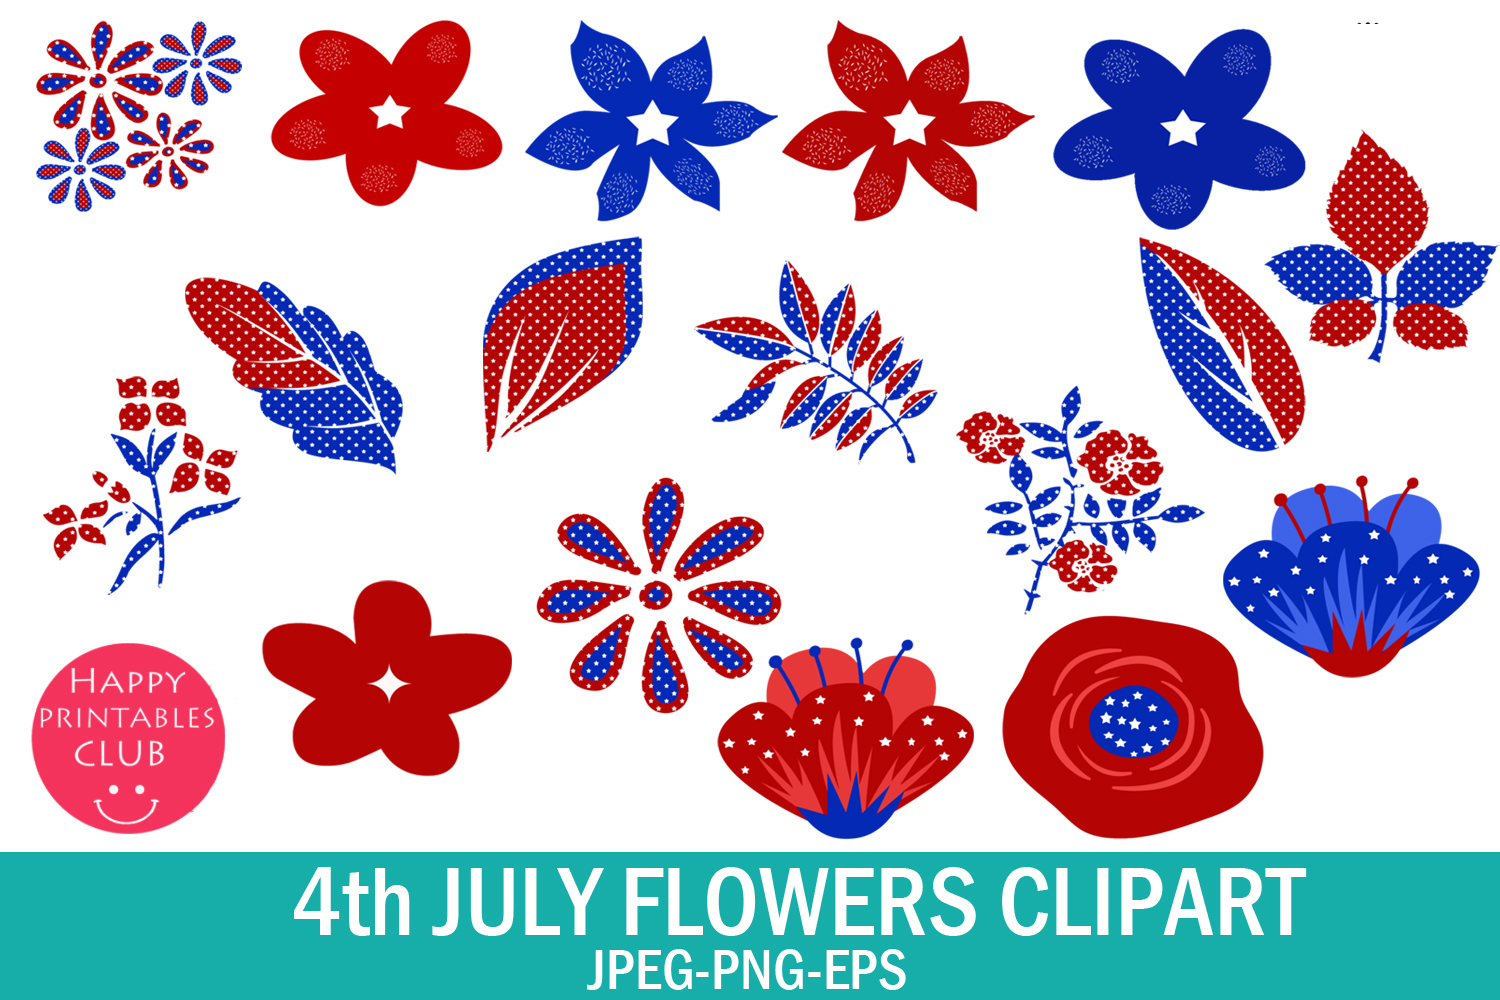 4th July Flowers Clipart- July 4 Flowers Graphics Clipart example image 2